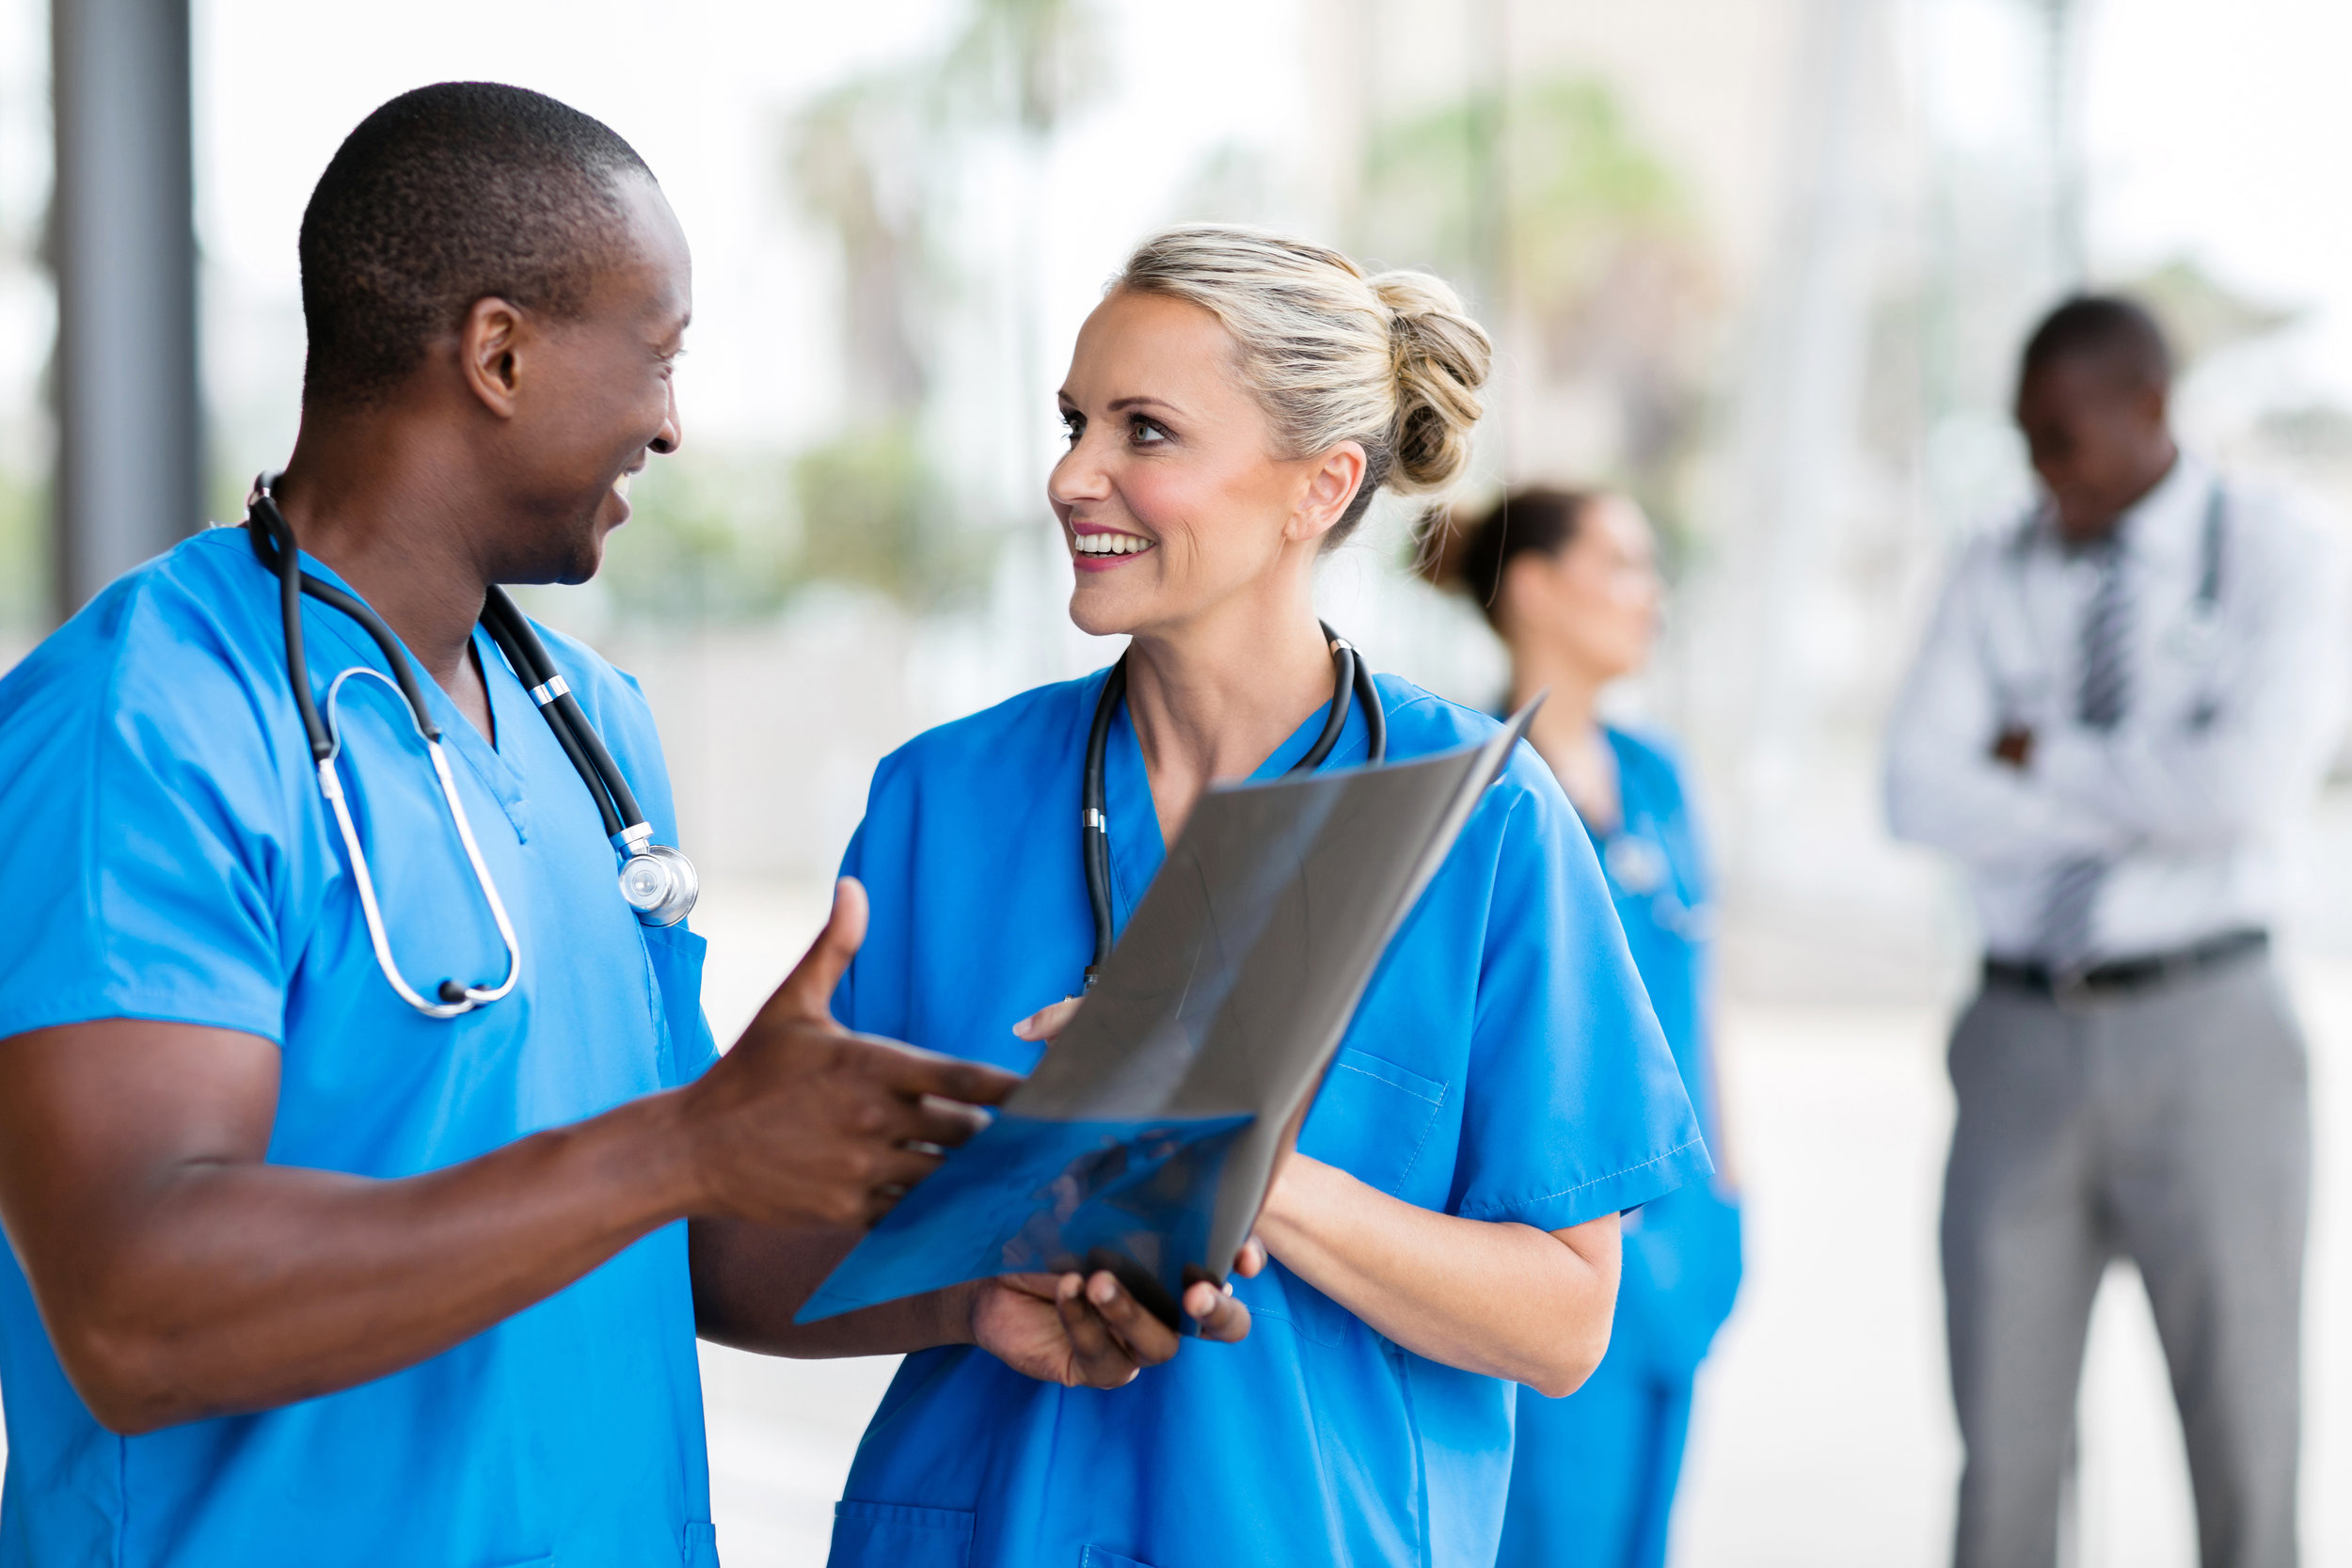 Six Keys to Improving Progression of Quality Care in Hospitals